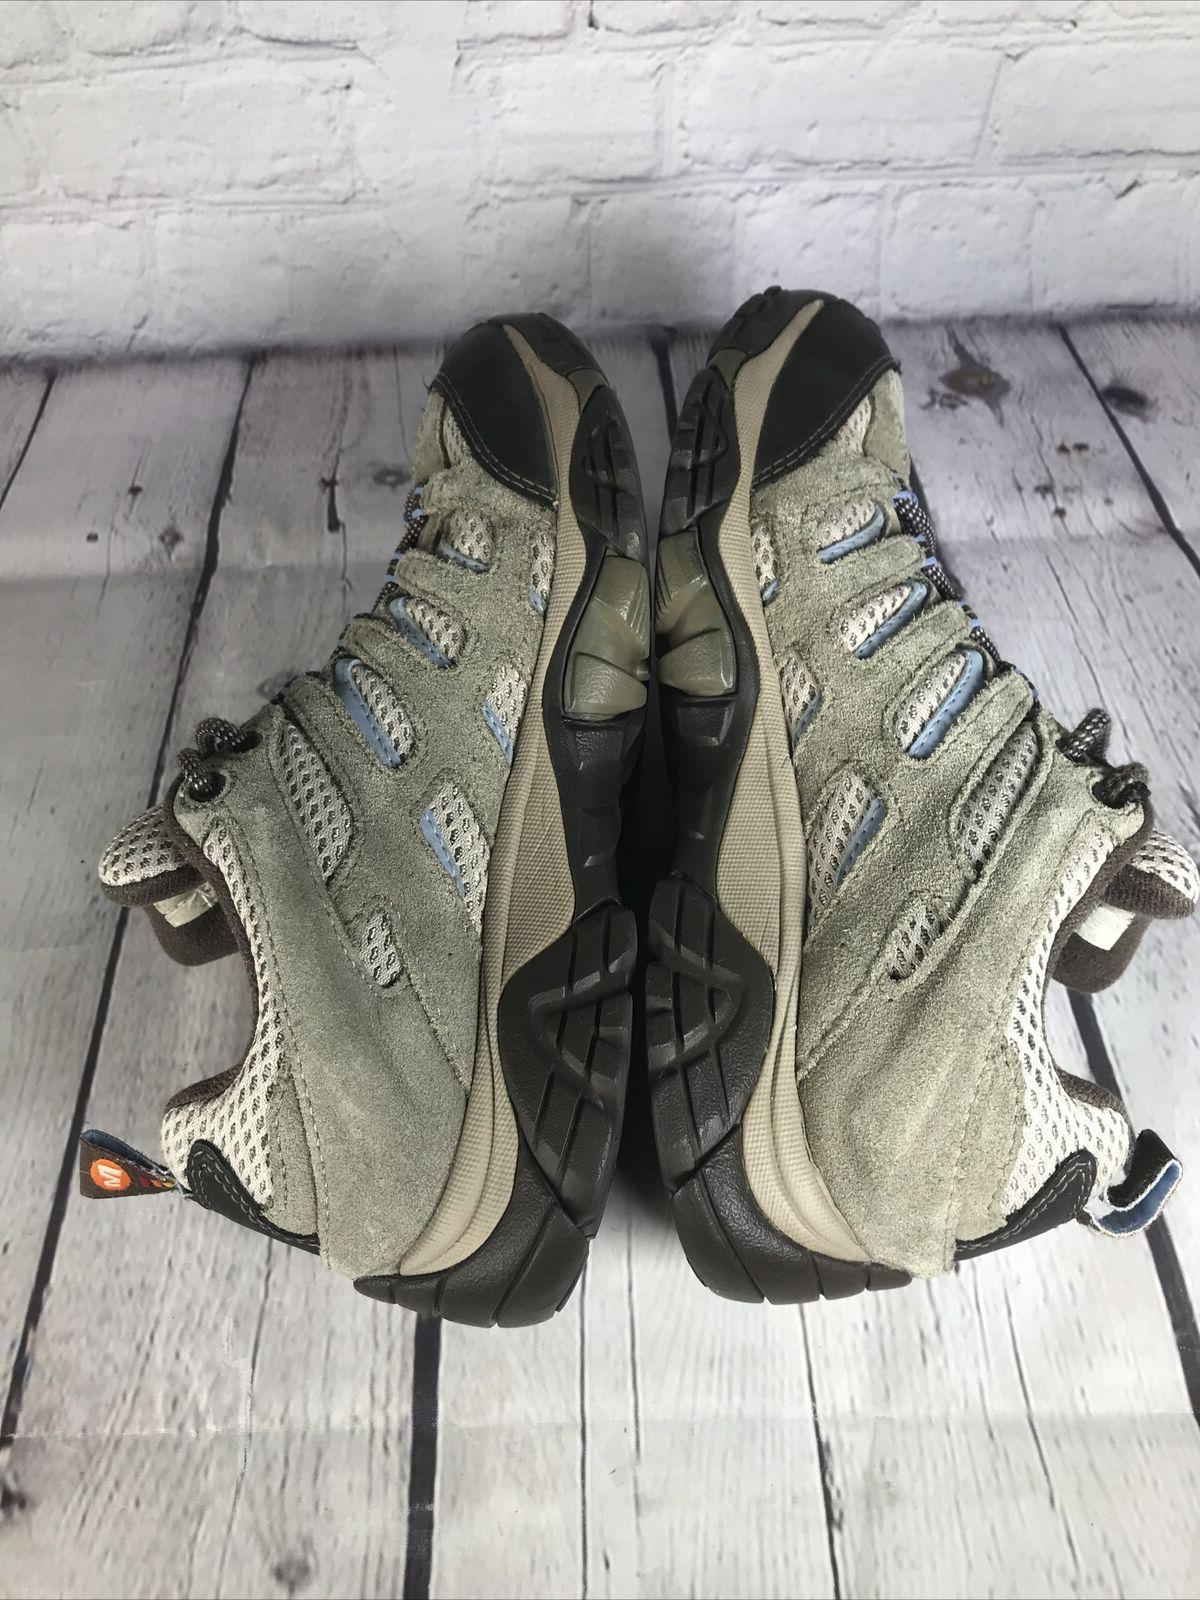 Merrell Moab Gray Hiking Shoes/Boots Soles Size 8